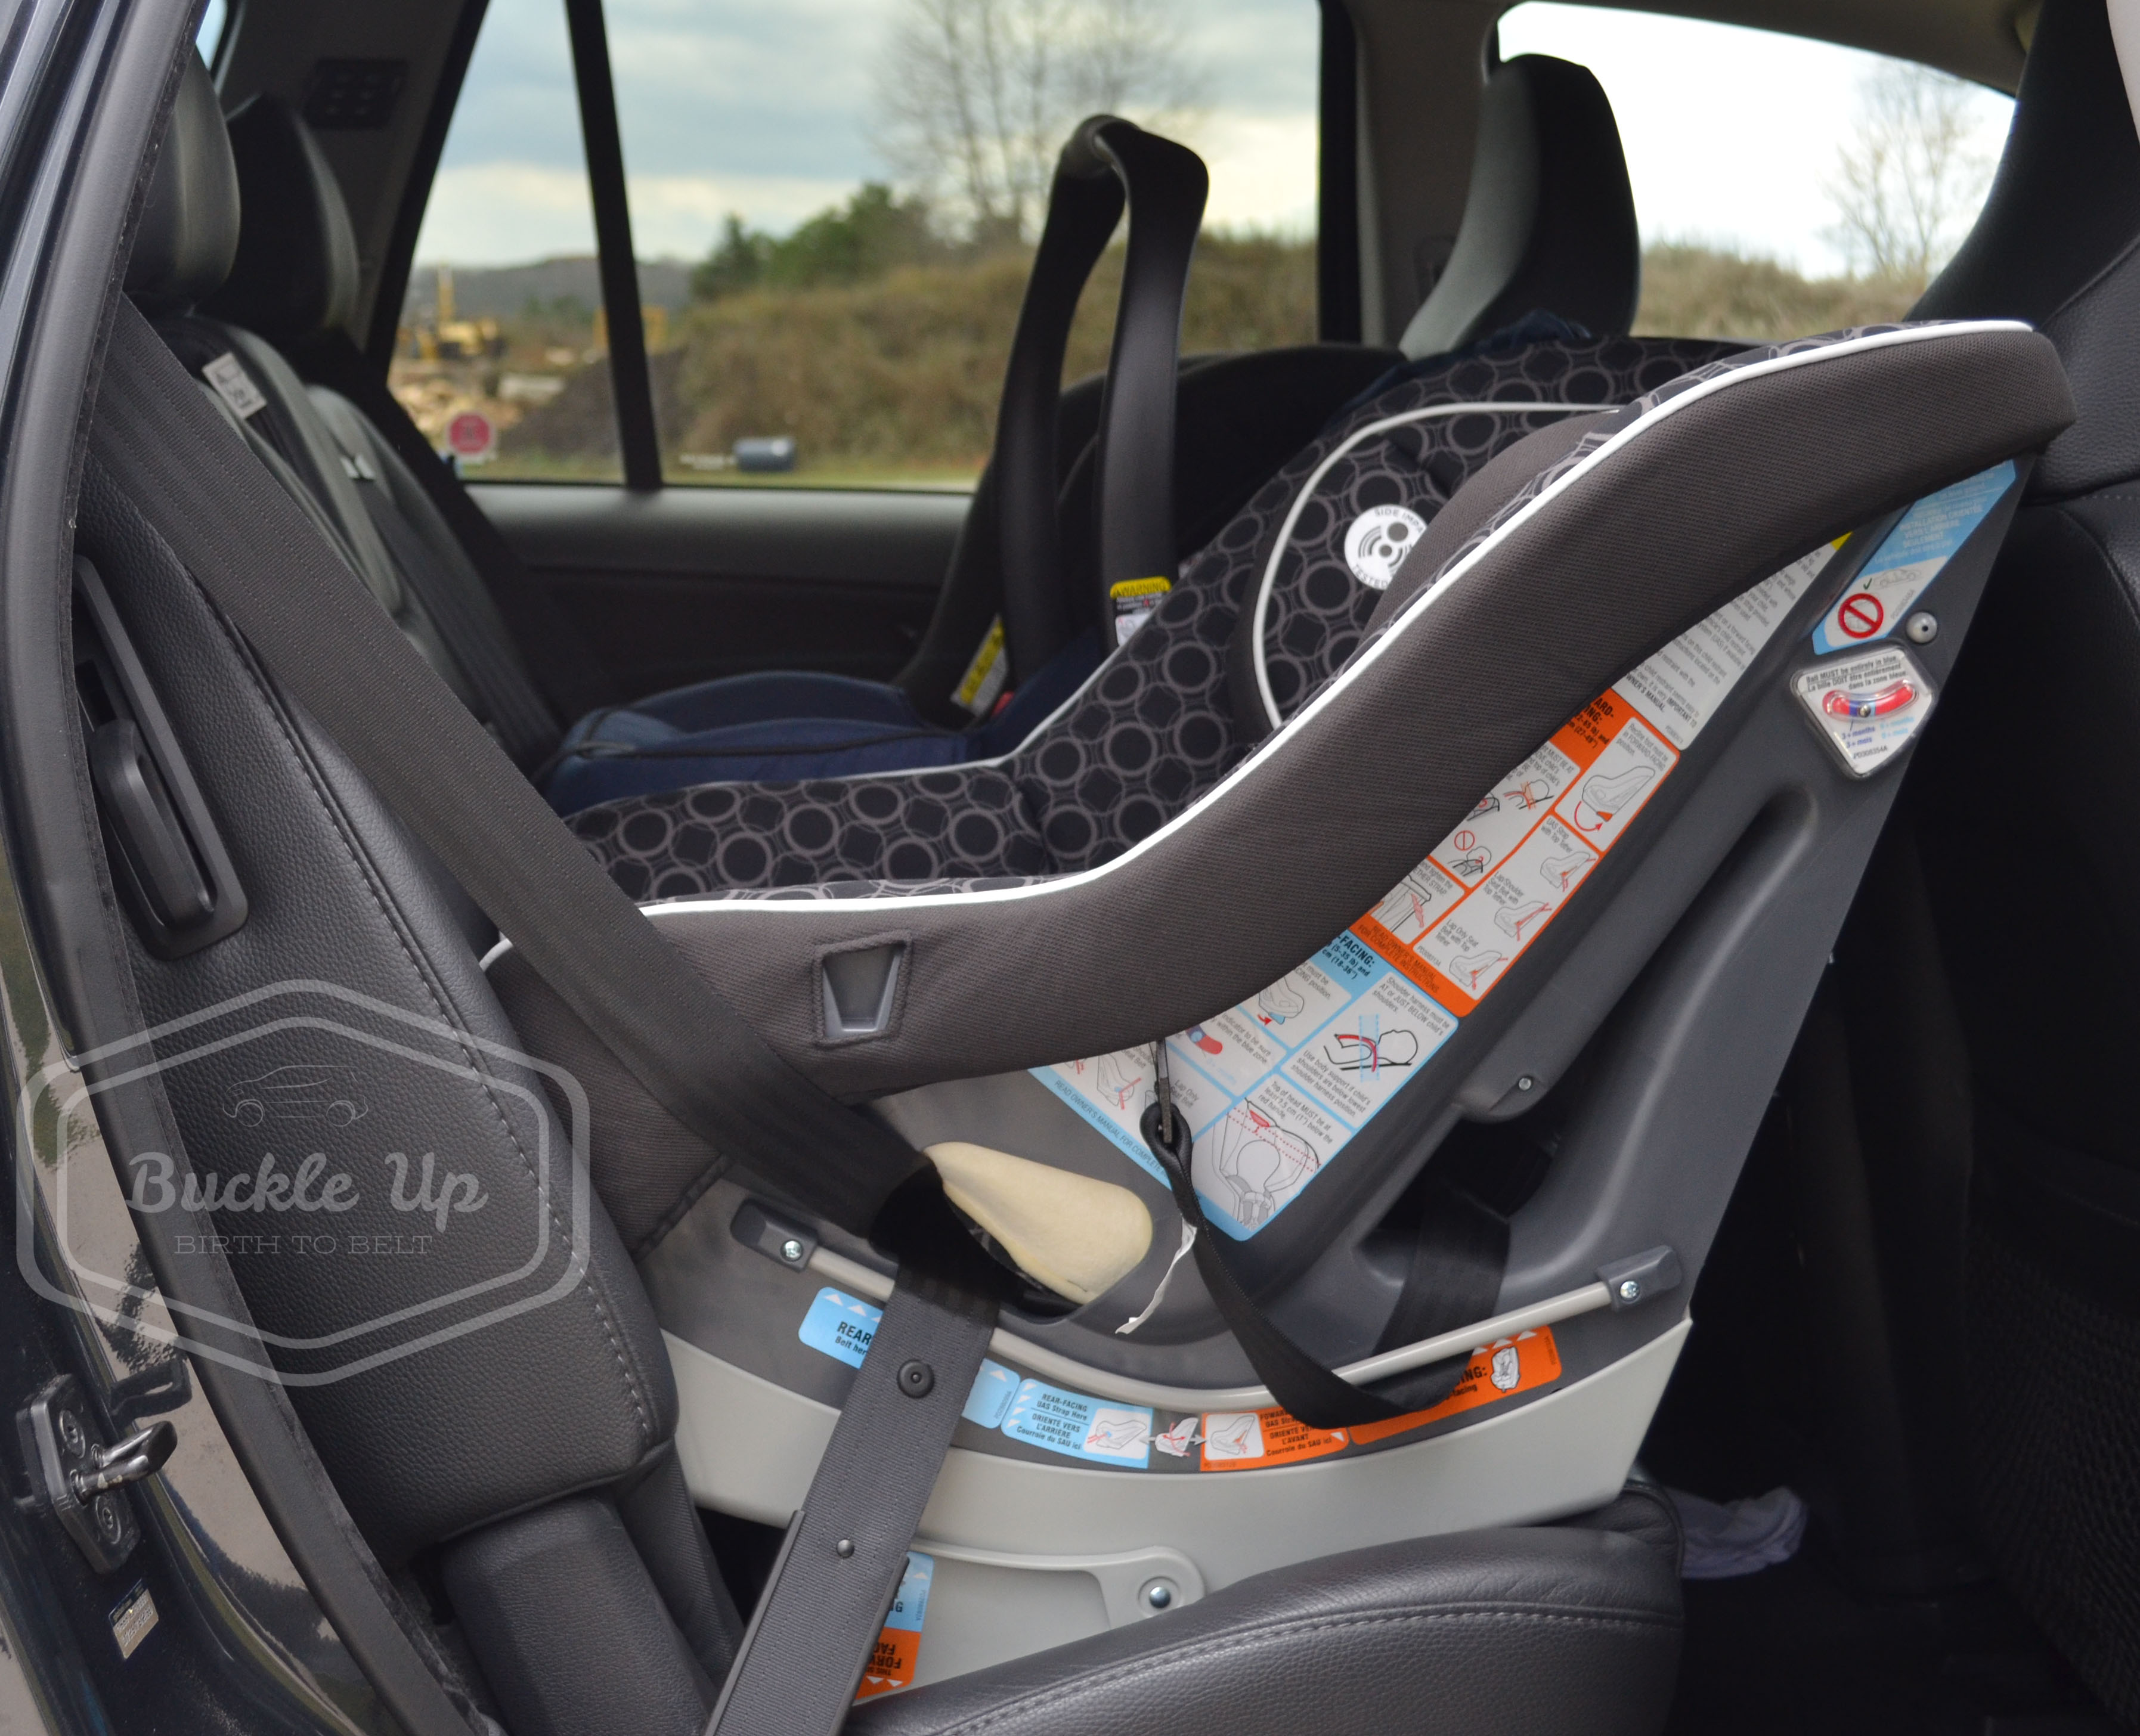 Car Seat – Buckle Up: Birth to Belt